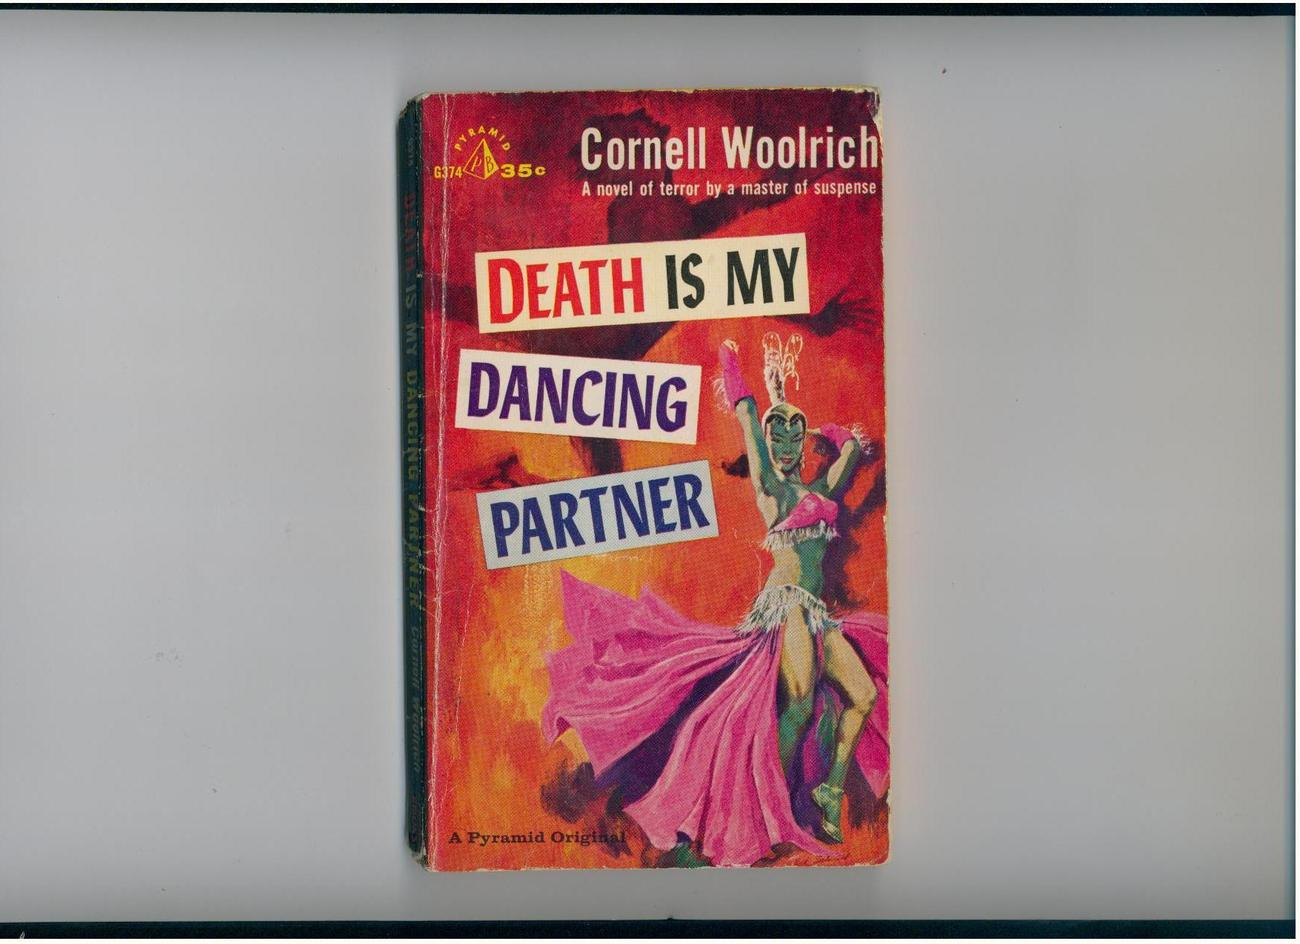 Primary image for Woolrich-DEATH IS MY DANCING PARTNER-1959-pb original